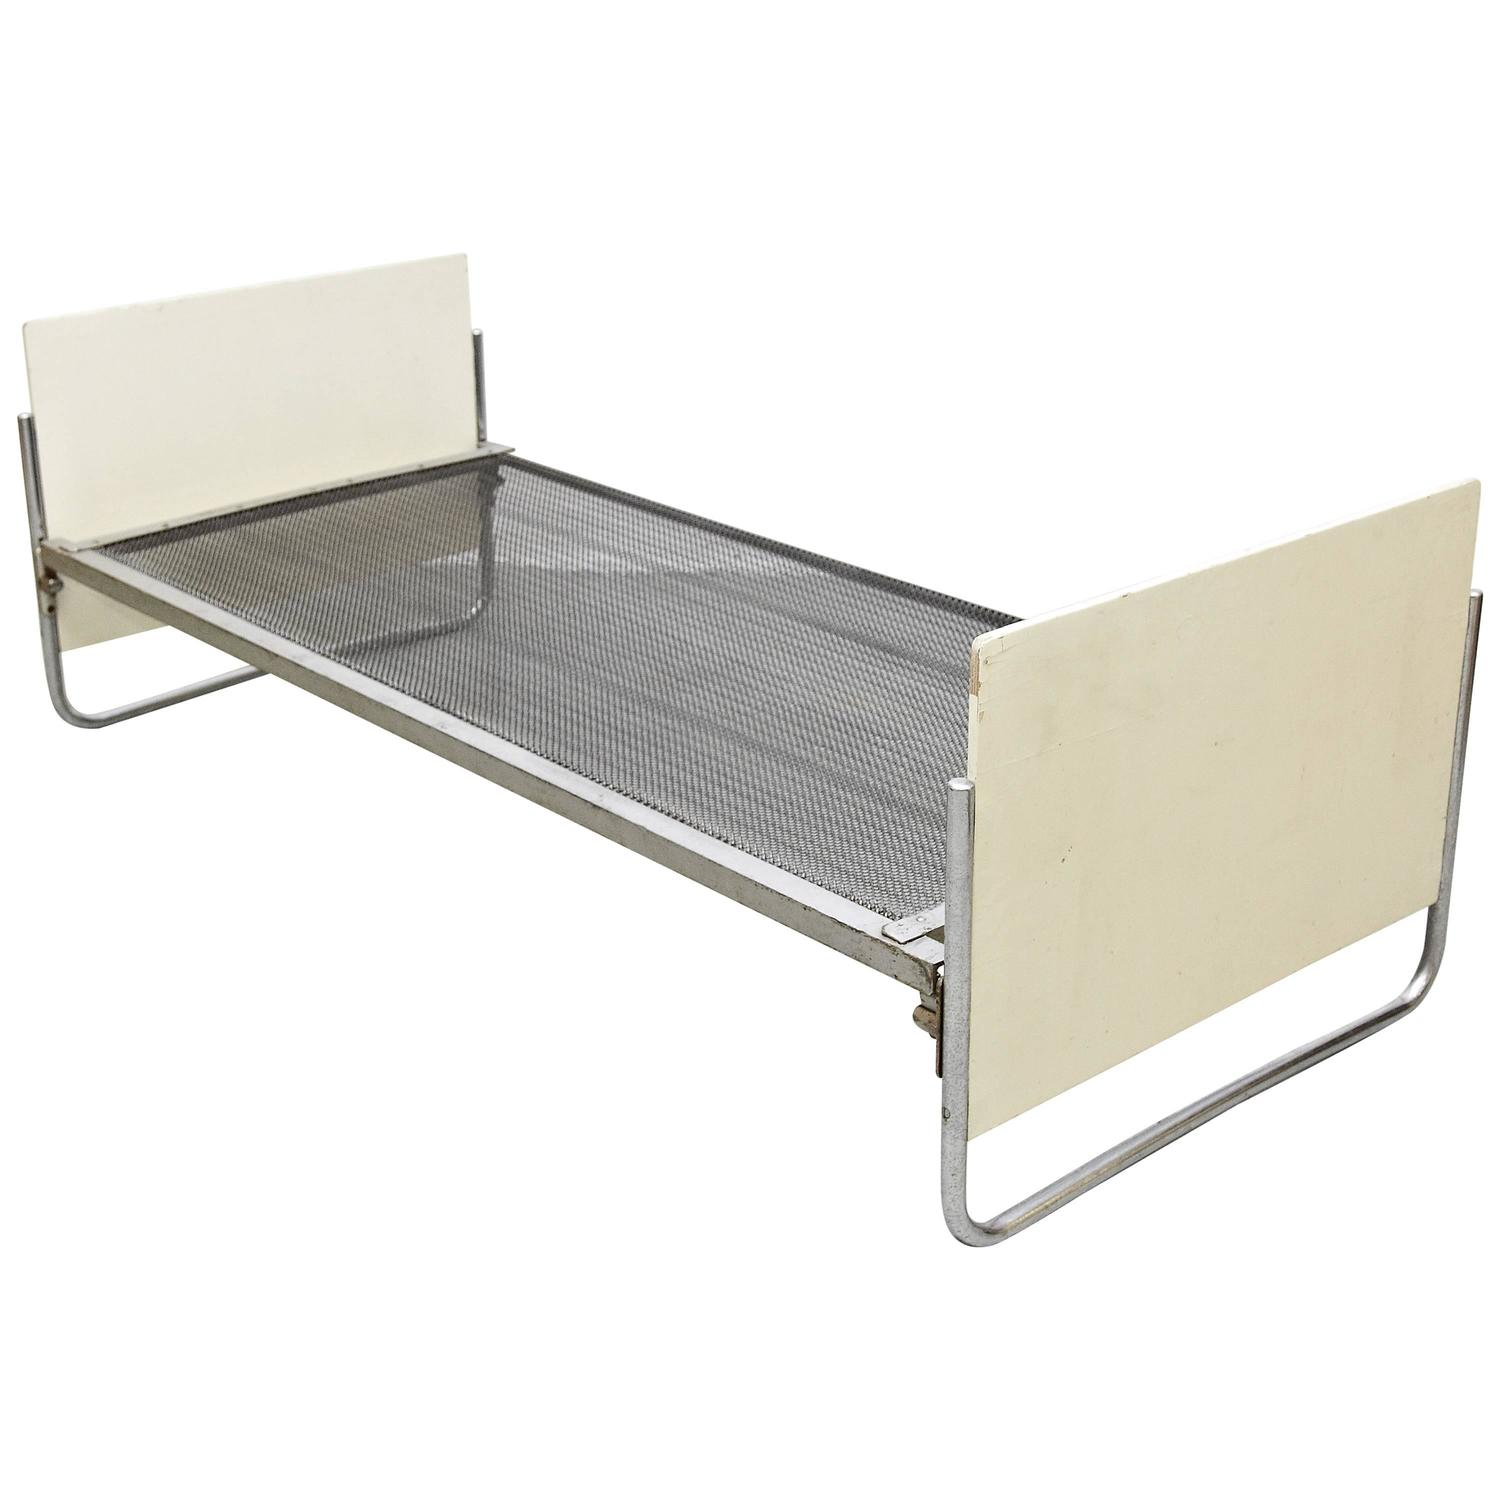 Early gispen bauhaus bed circa 1930 for sale at 1stdibs for Bauhaus sofa bed